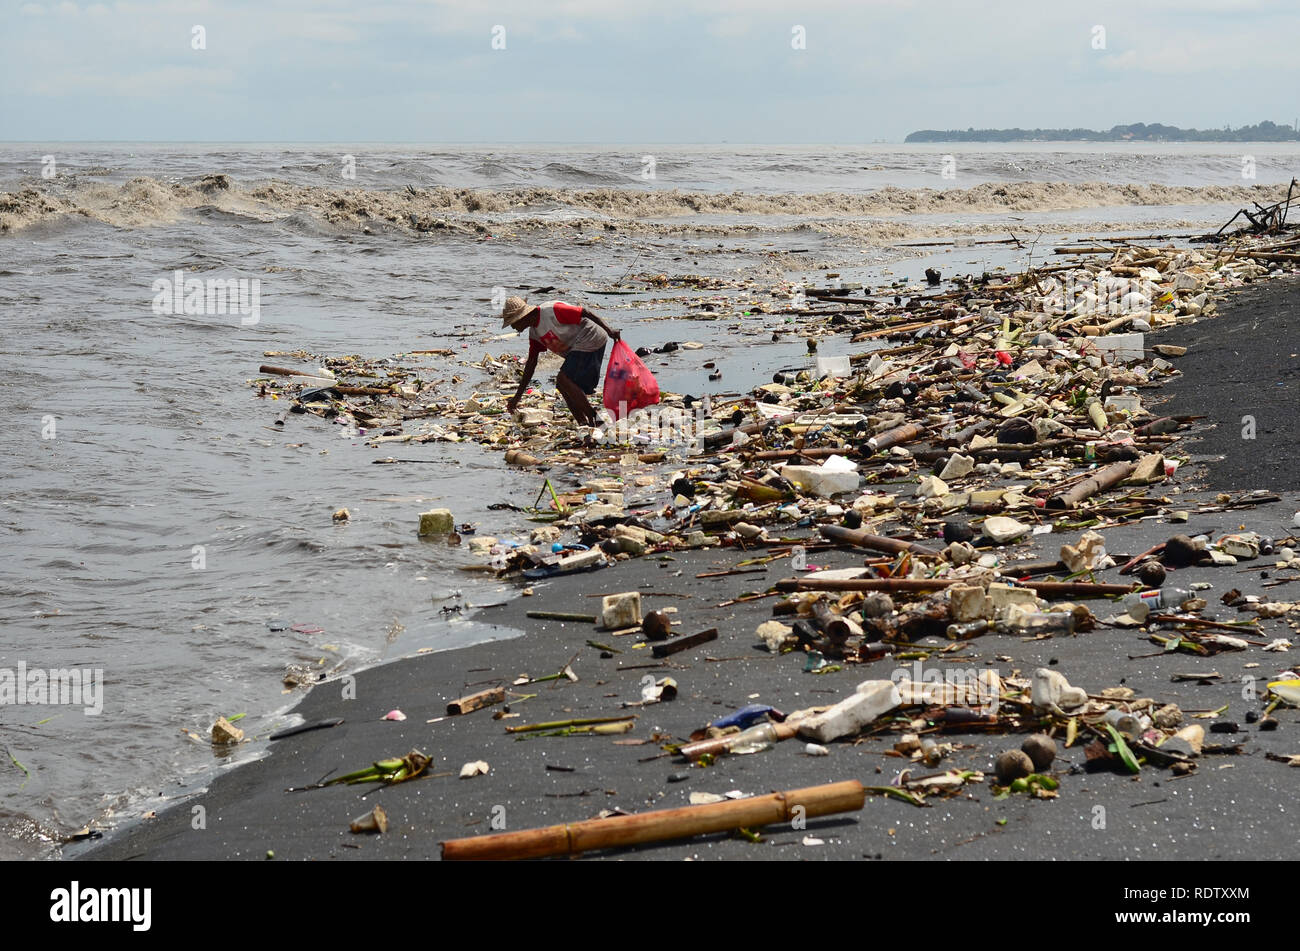 People Collecting Rubbish at Bali Beach during Monsoon - Stock Image